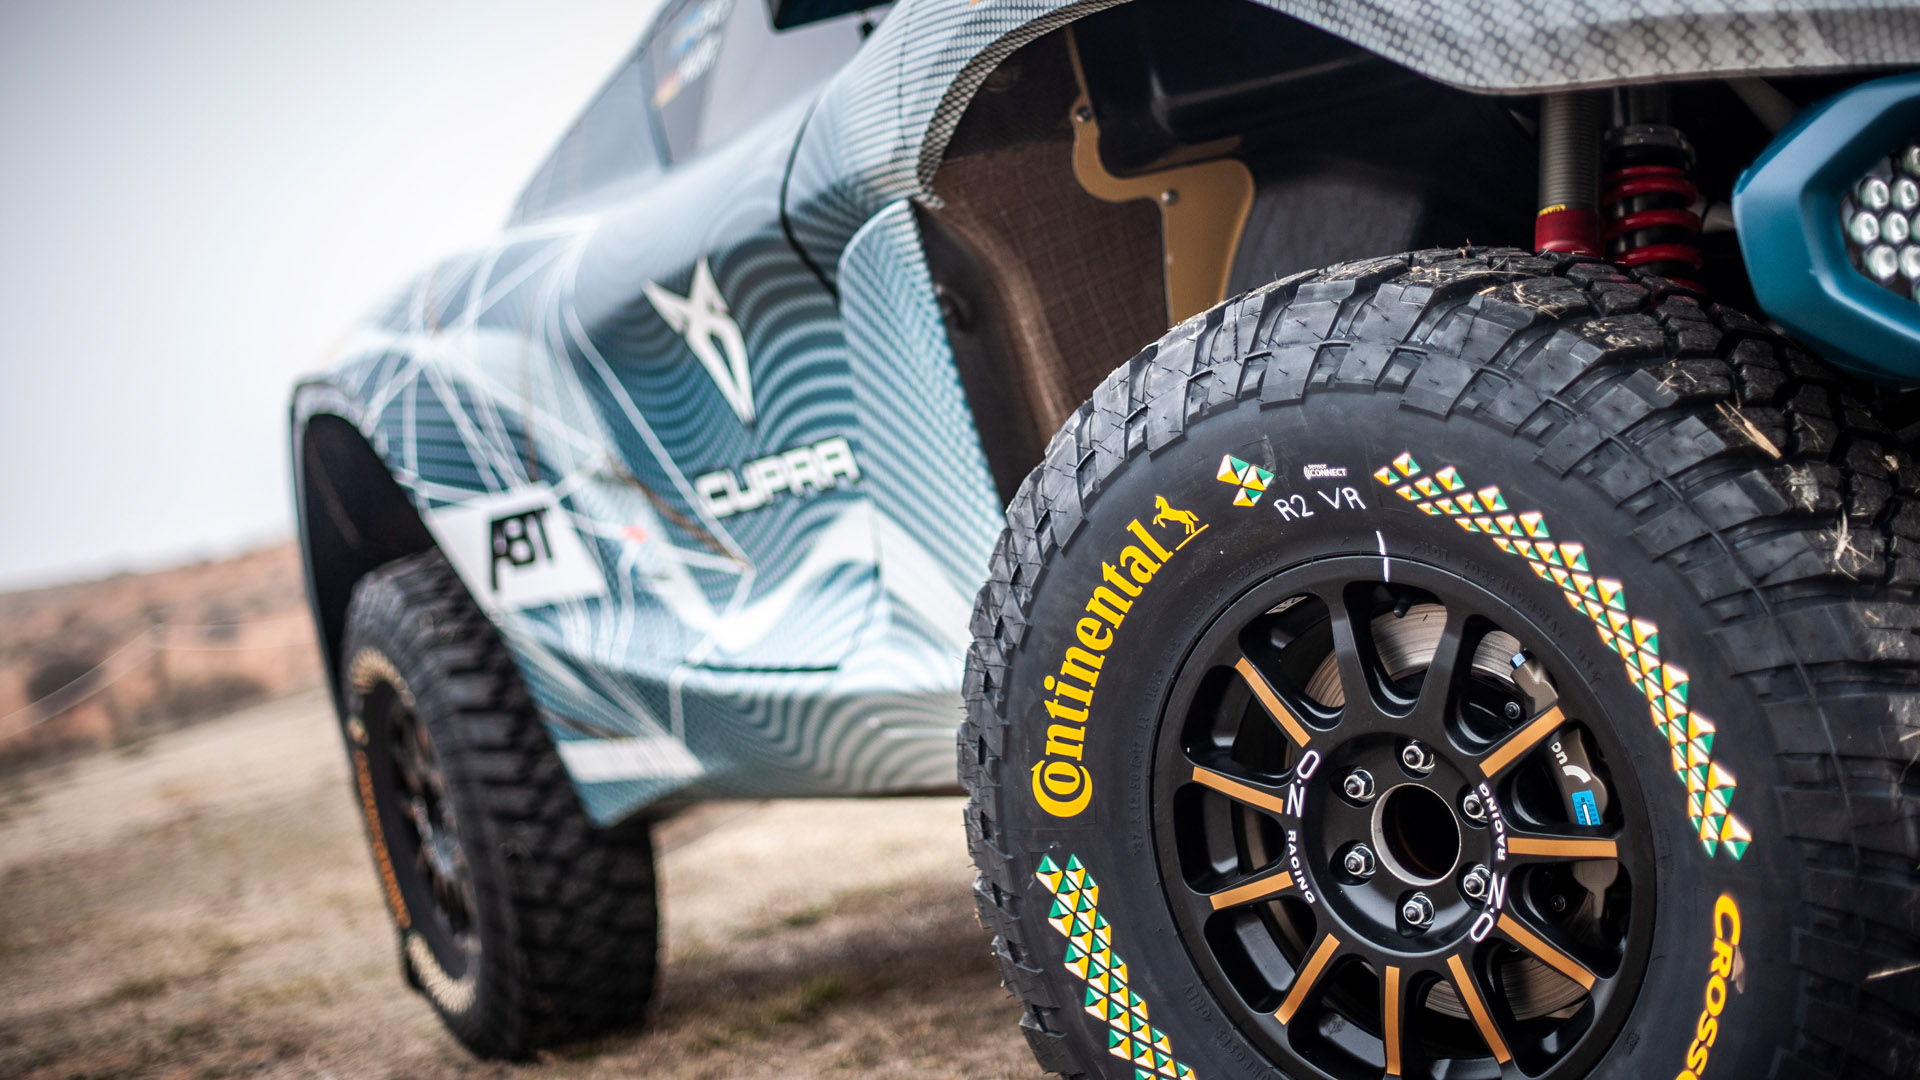 Continental Tyres Extreme E vehicle